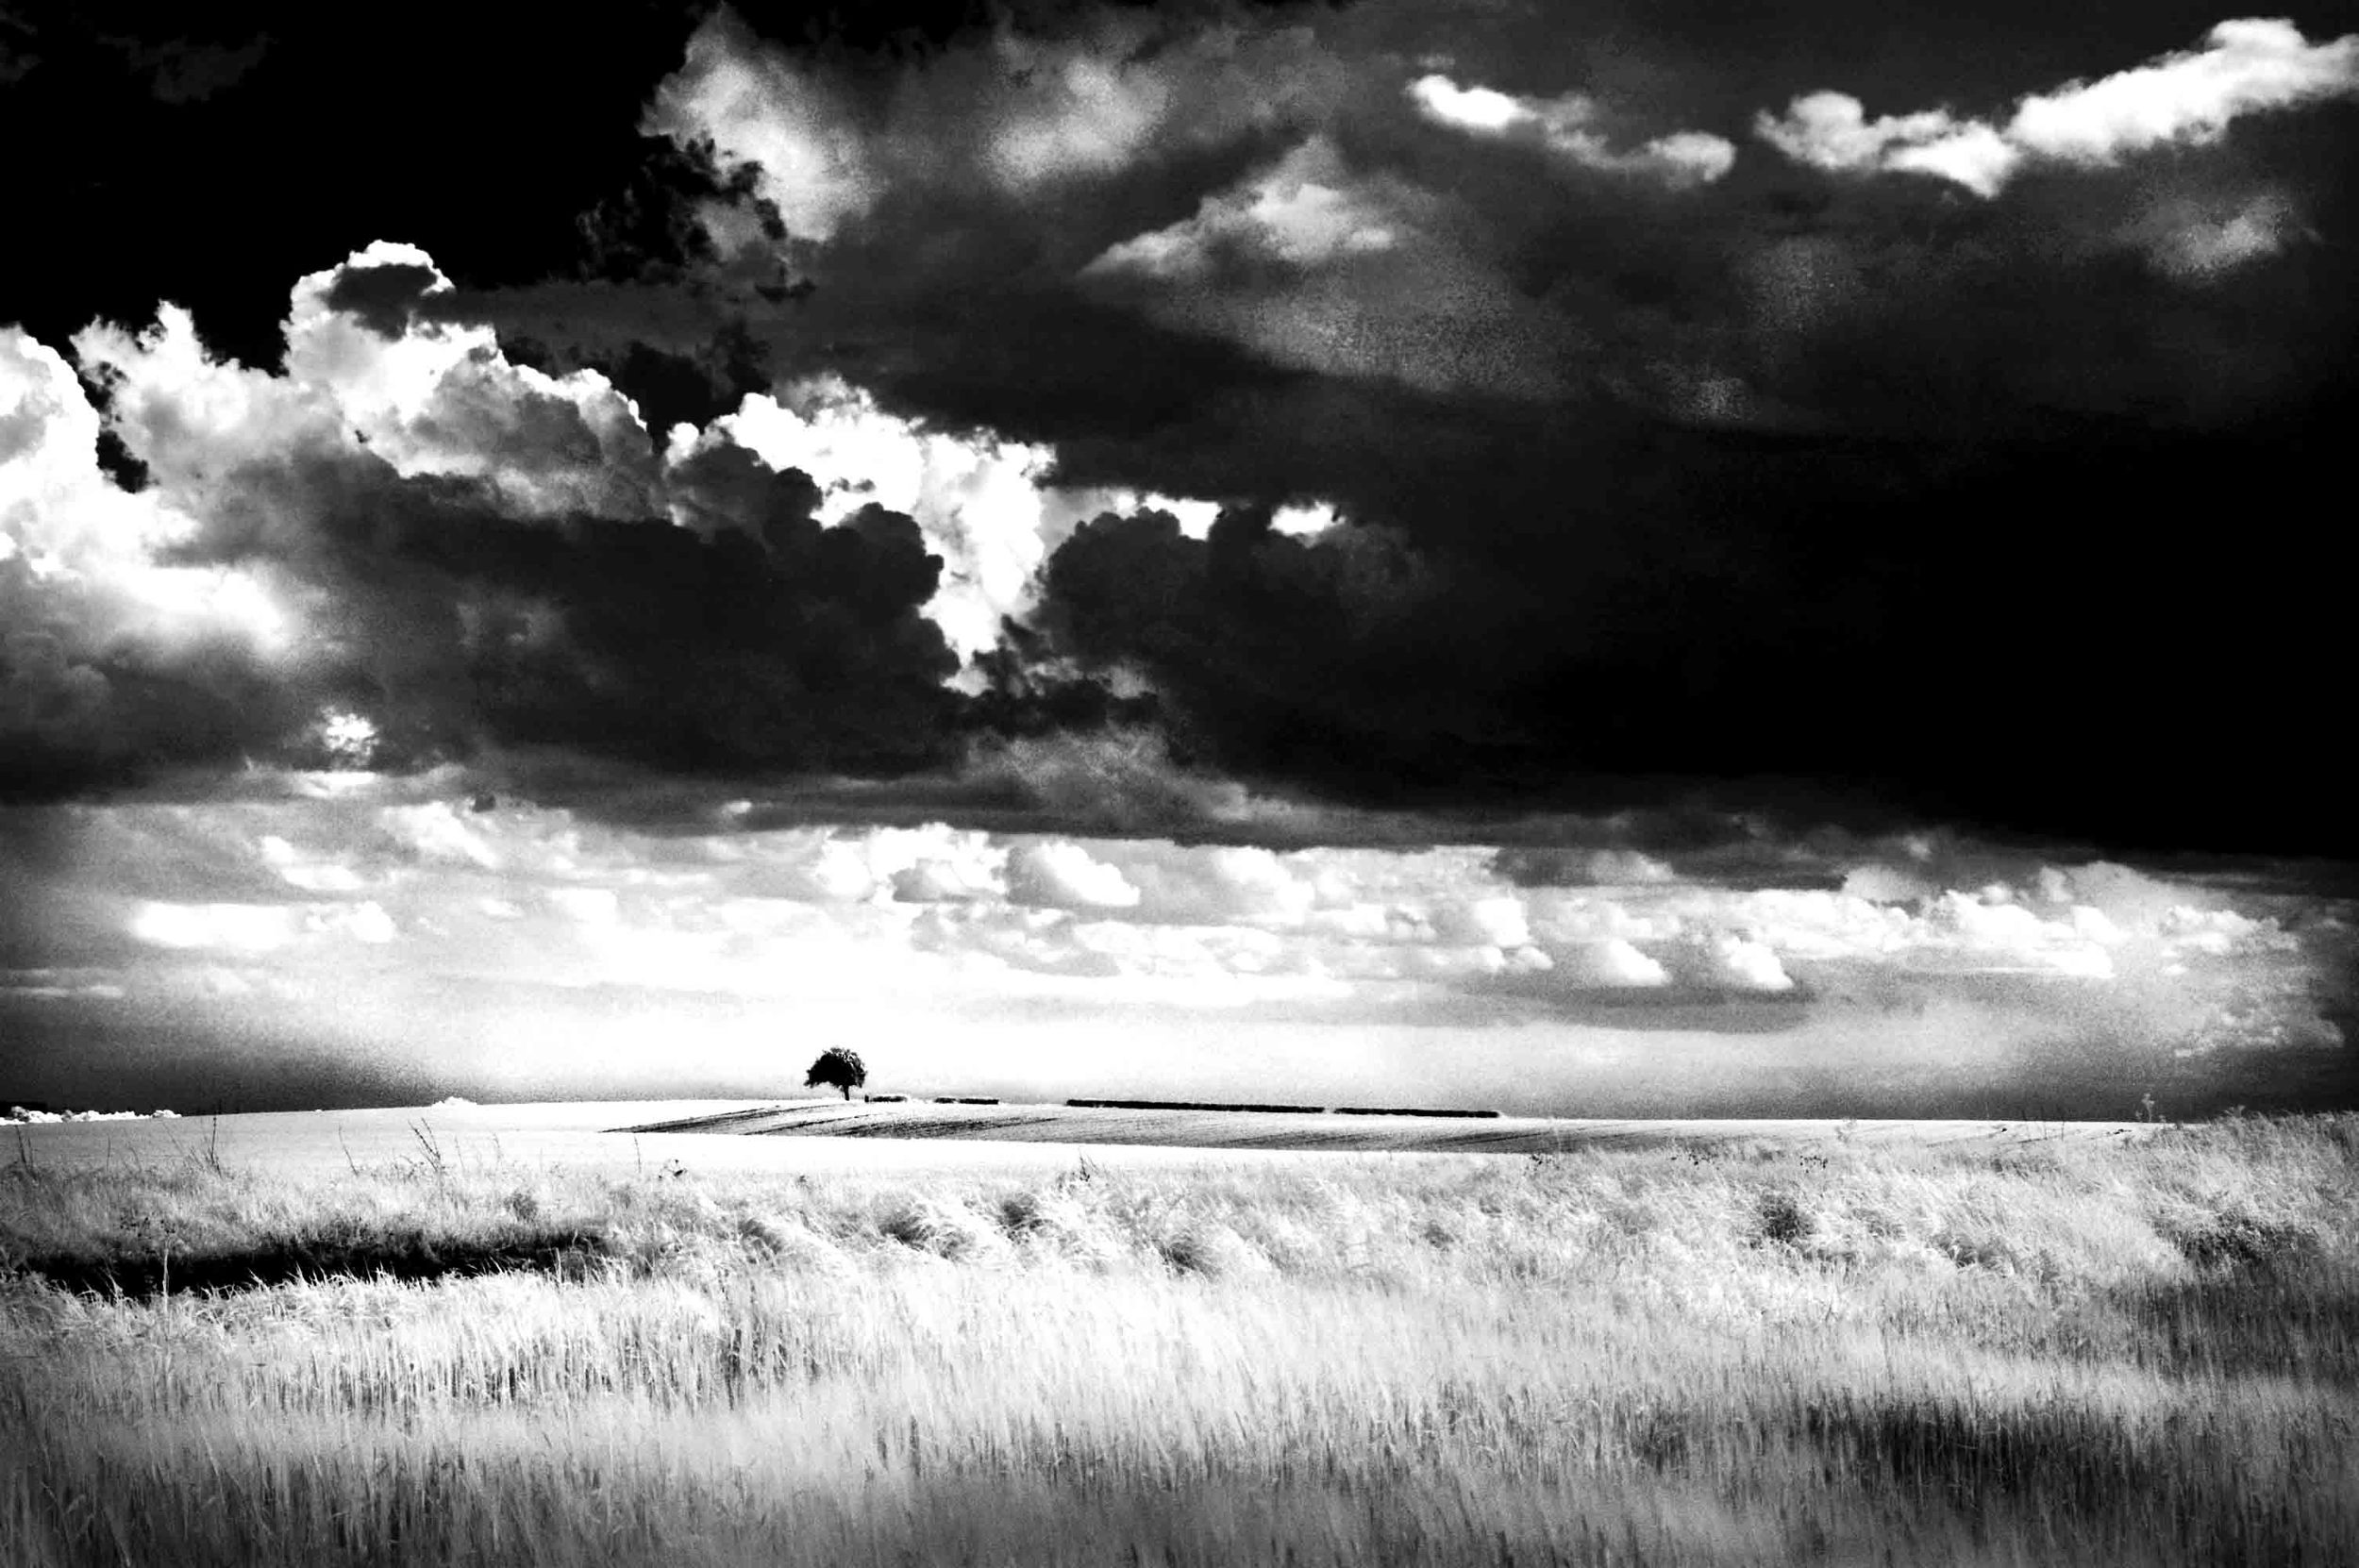 Storm over Towton, by Rae Tan